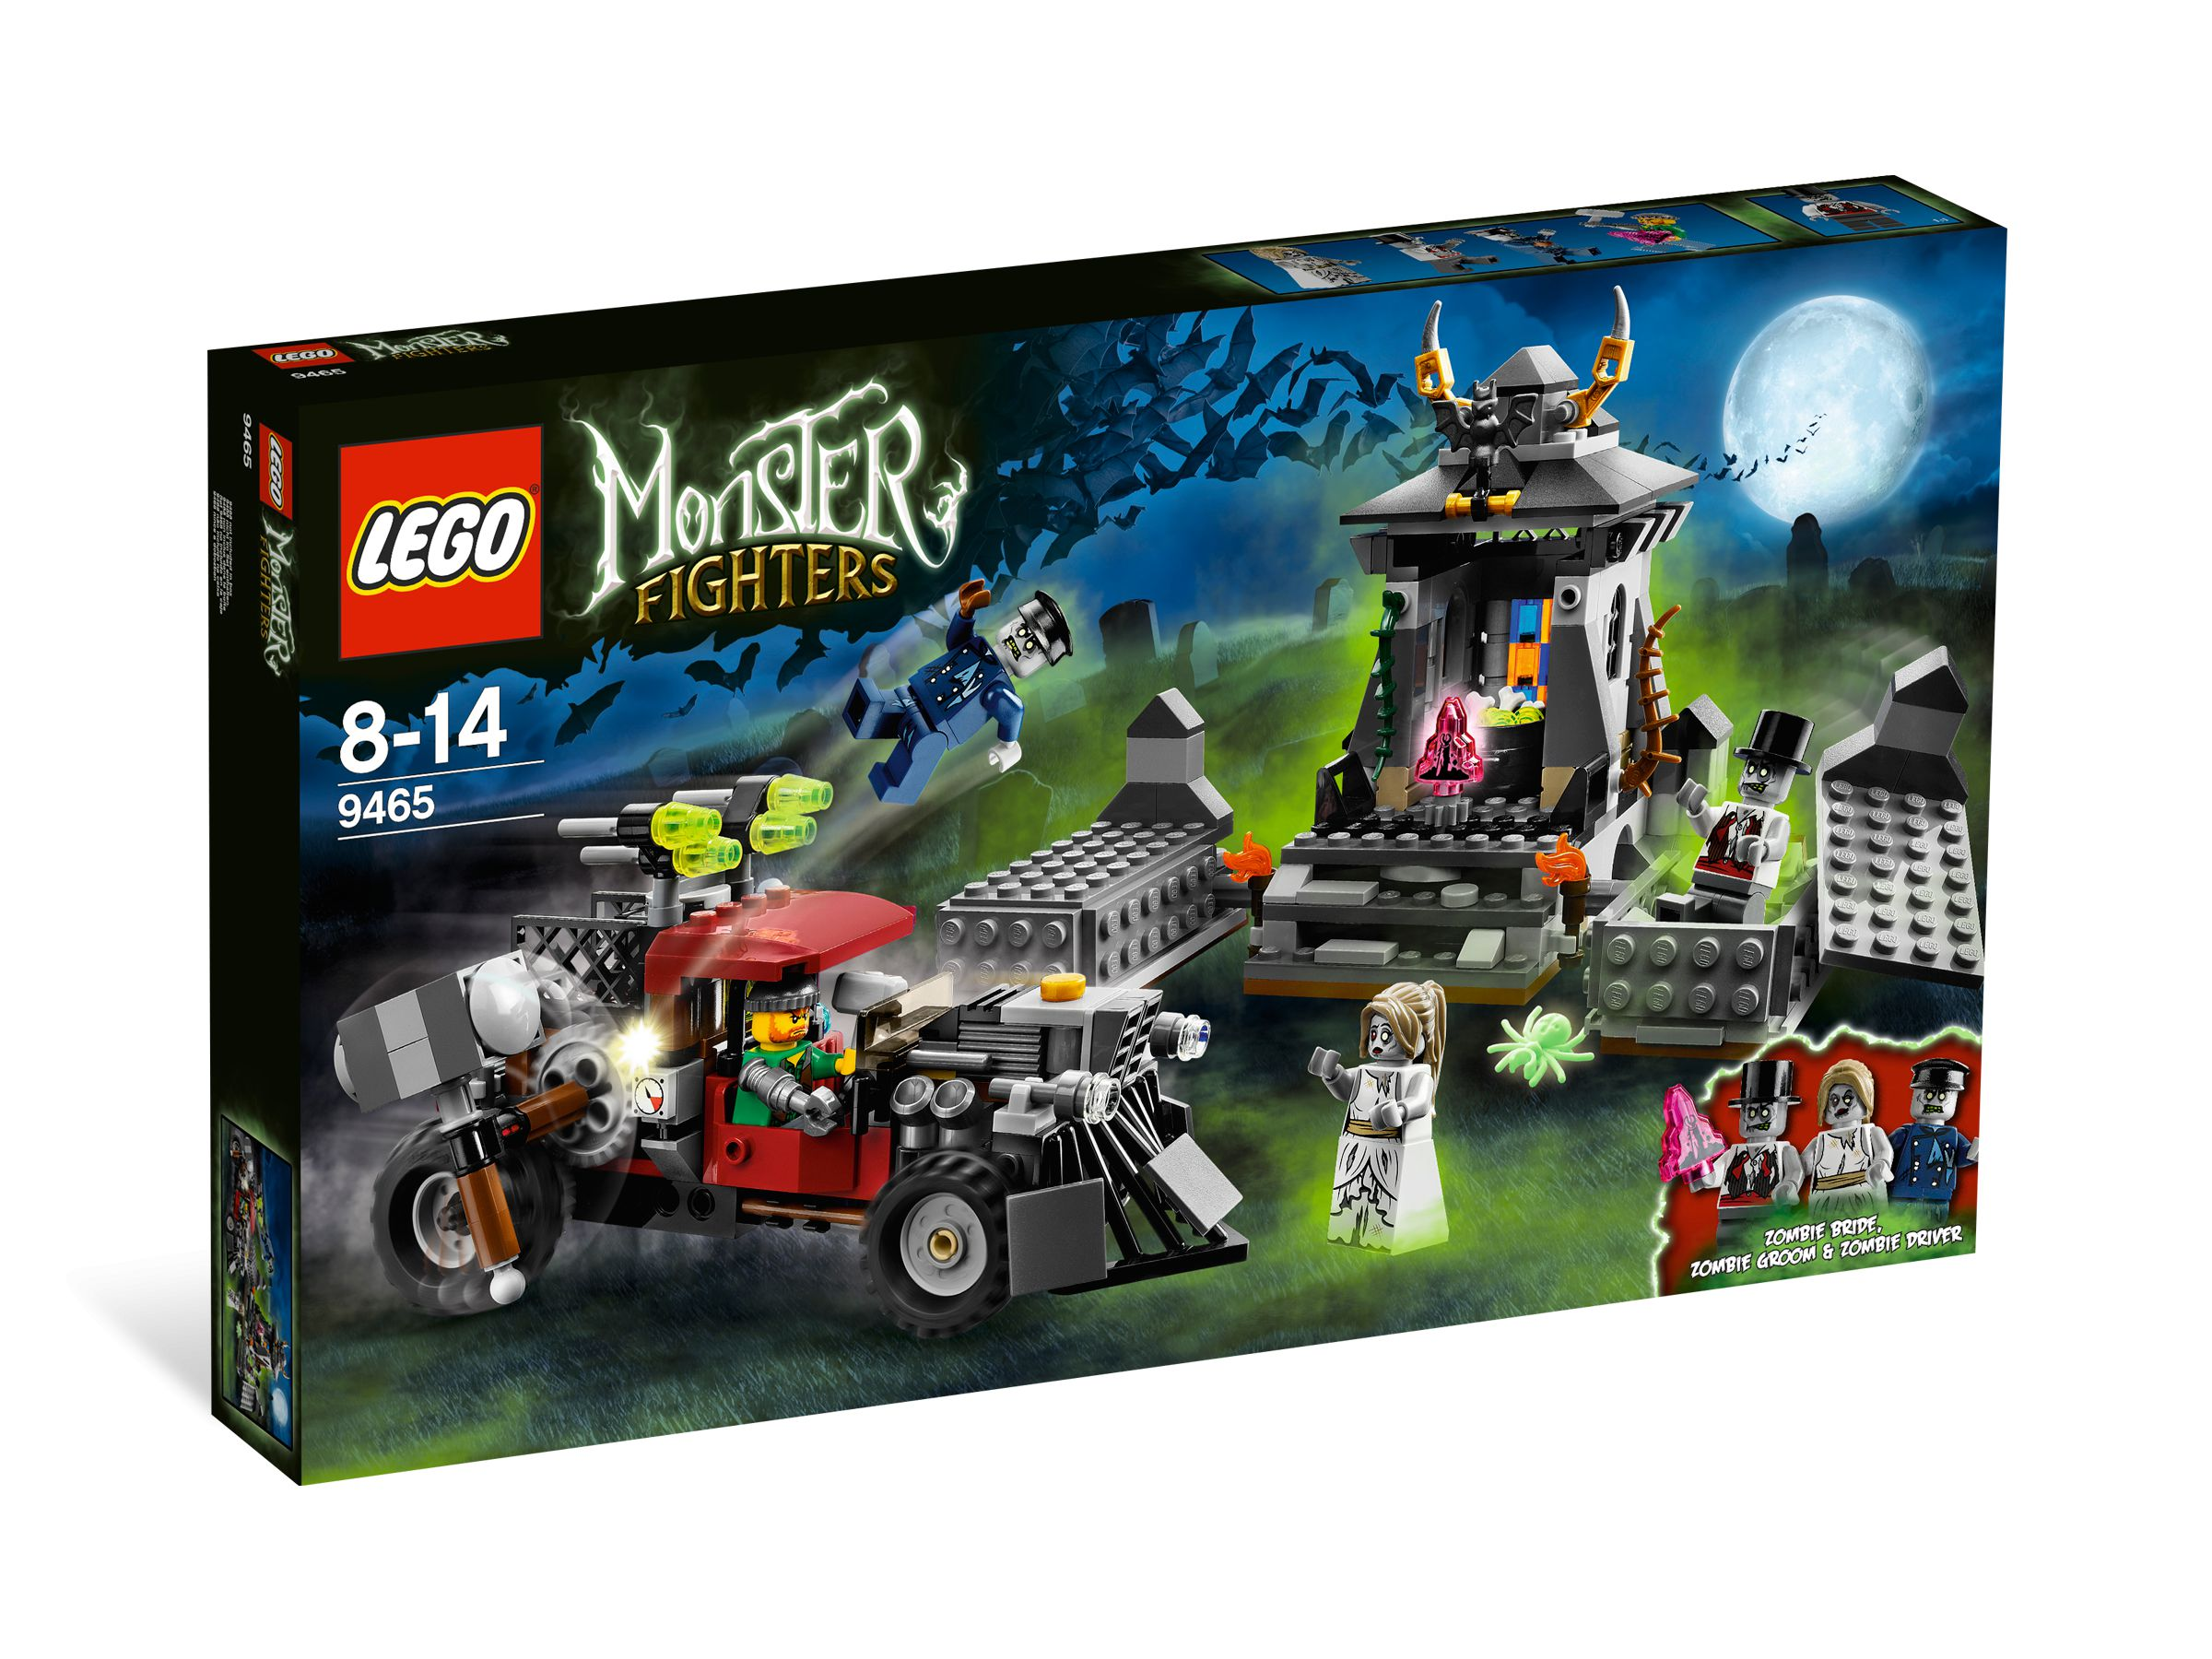 LEGO Monster Fighters 9465 The Zombies LEGO_9465_alt1.jpg